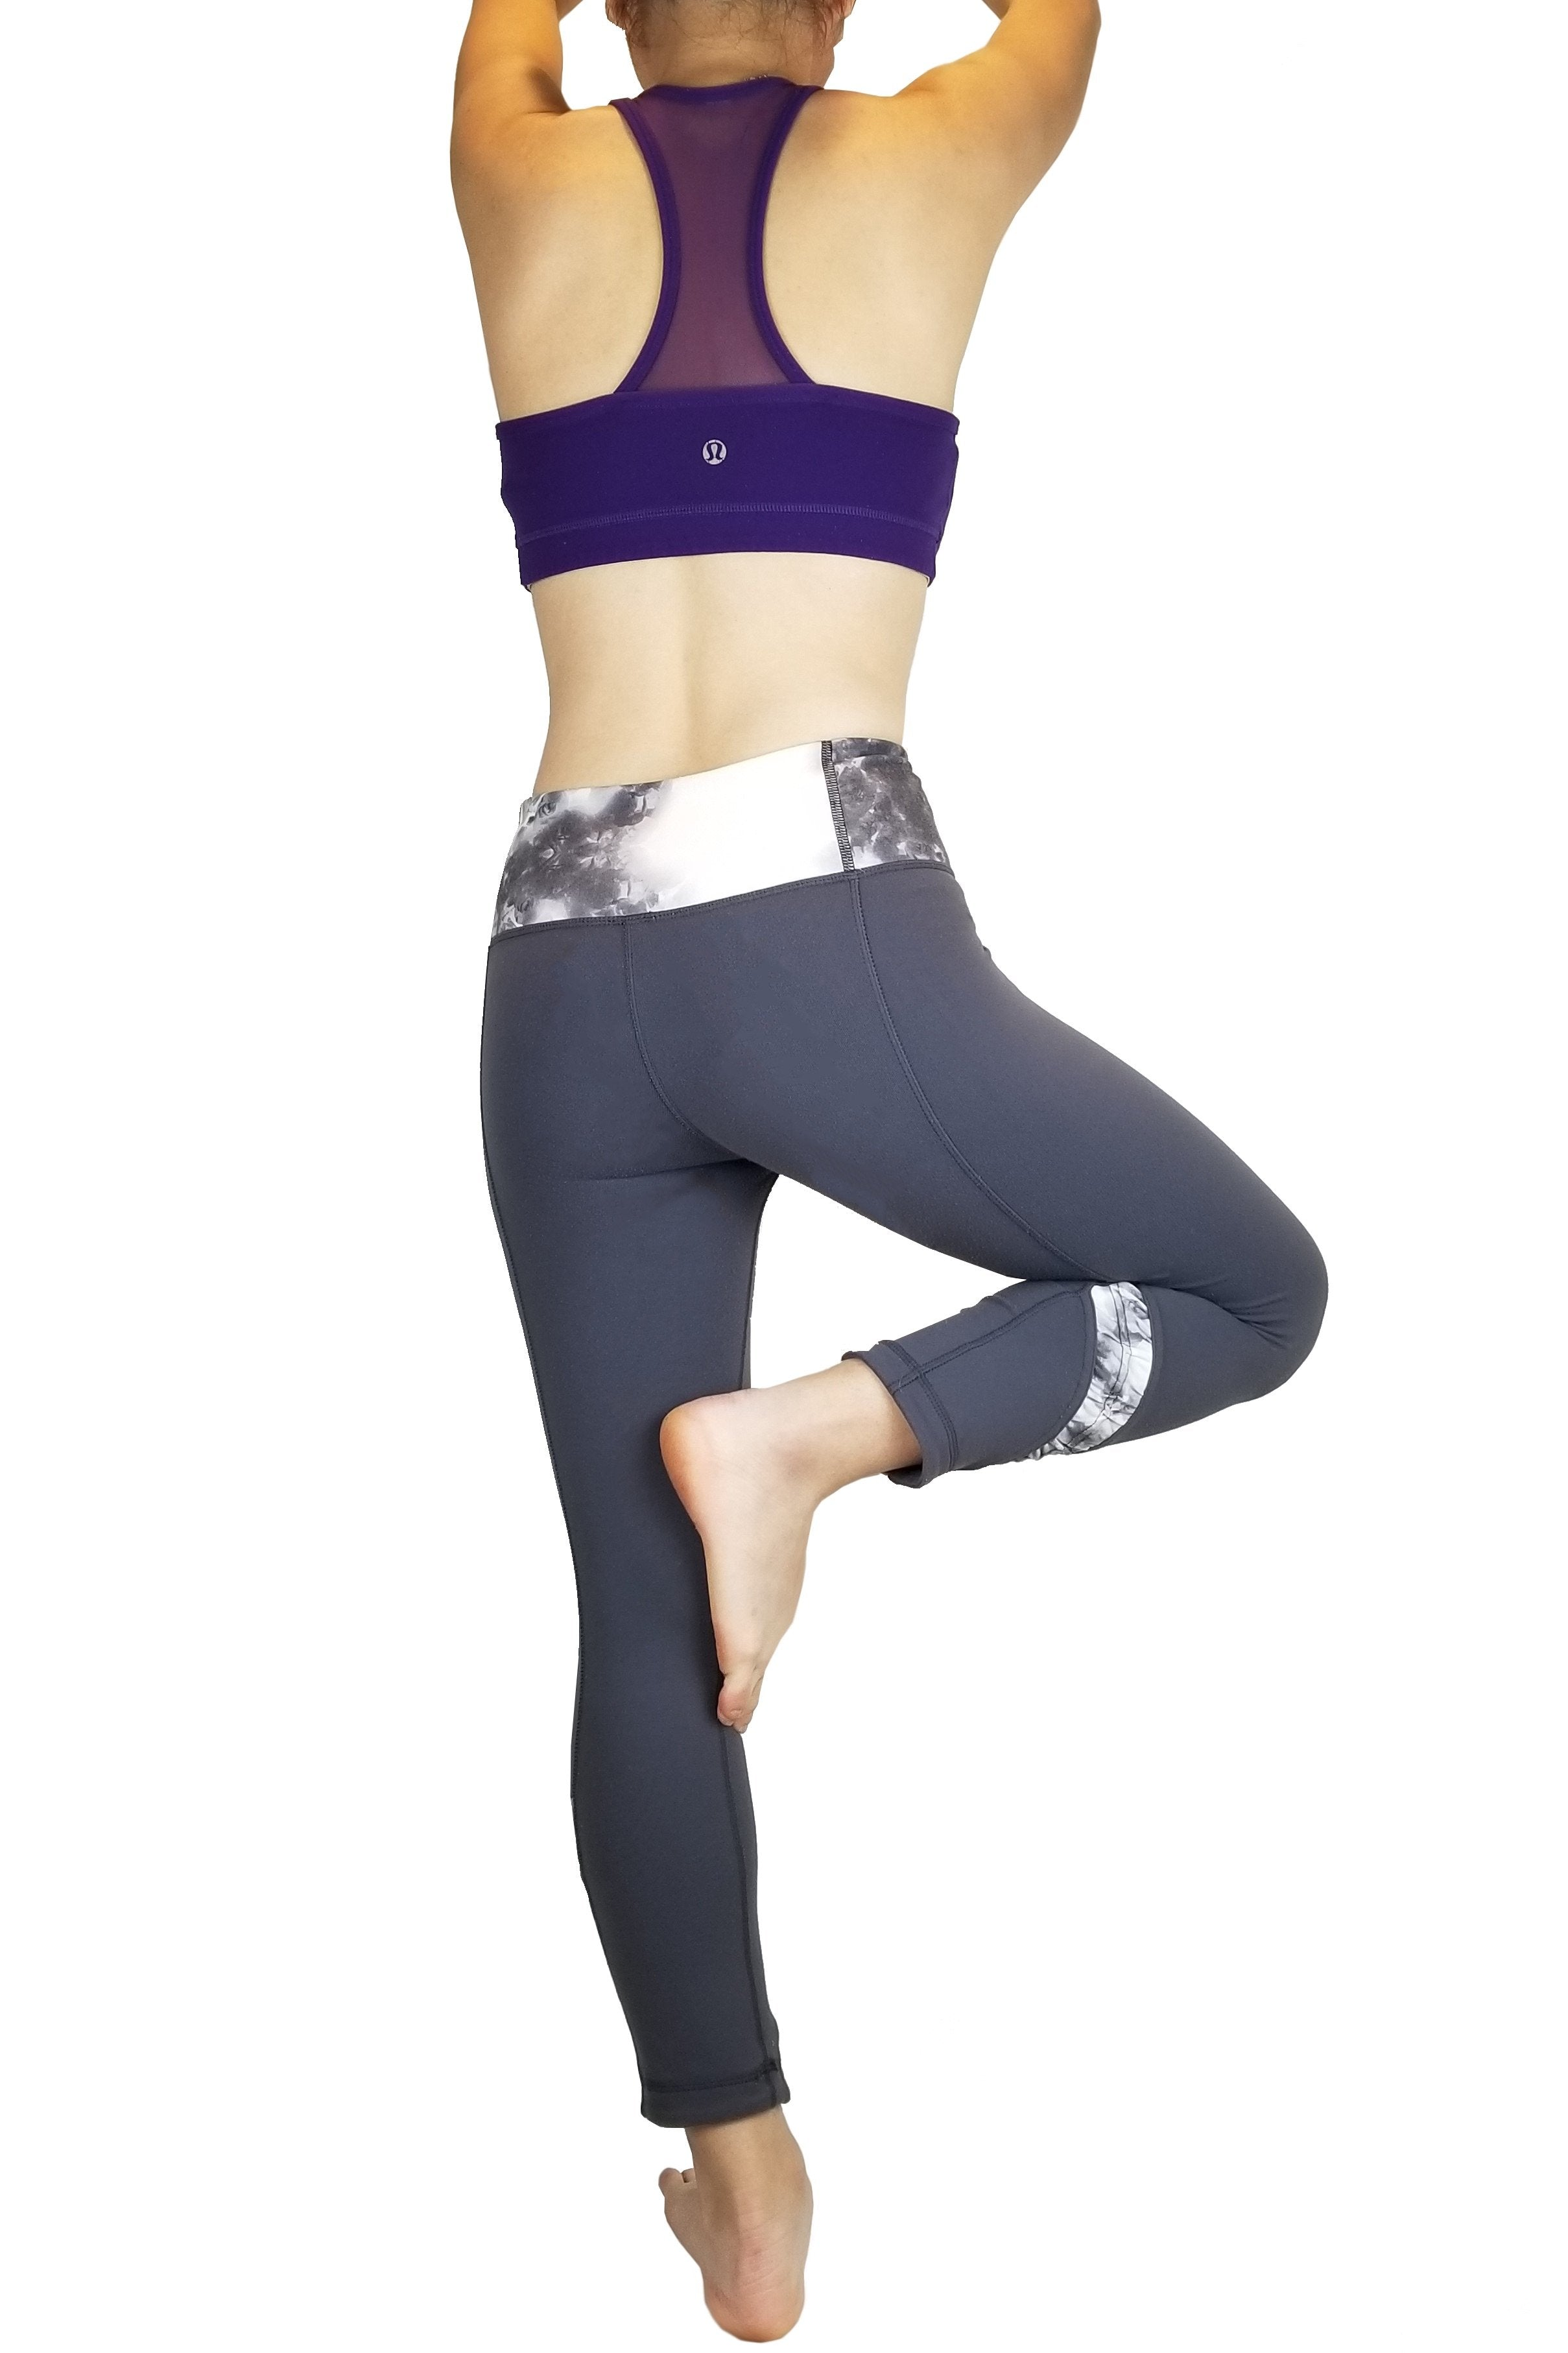 Lululemon Tight Yoga Pants, Vancouver street wear/Yoga pants. Lululemon size 4. https://info.lululemon.com/help/size-chart, Grey, Nylon, Lycra, and Spandex, Yoga, yoga pants, women's athletic wear, women's work out clothes, women's comfortable pants, fitness, fit